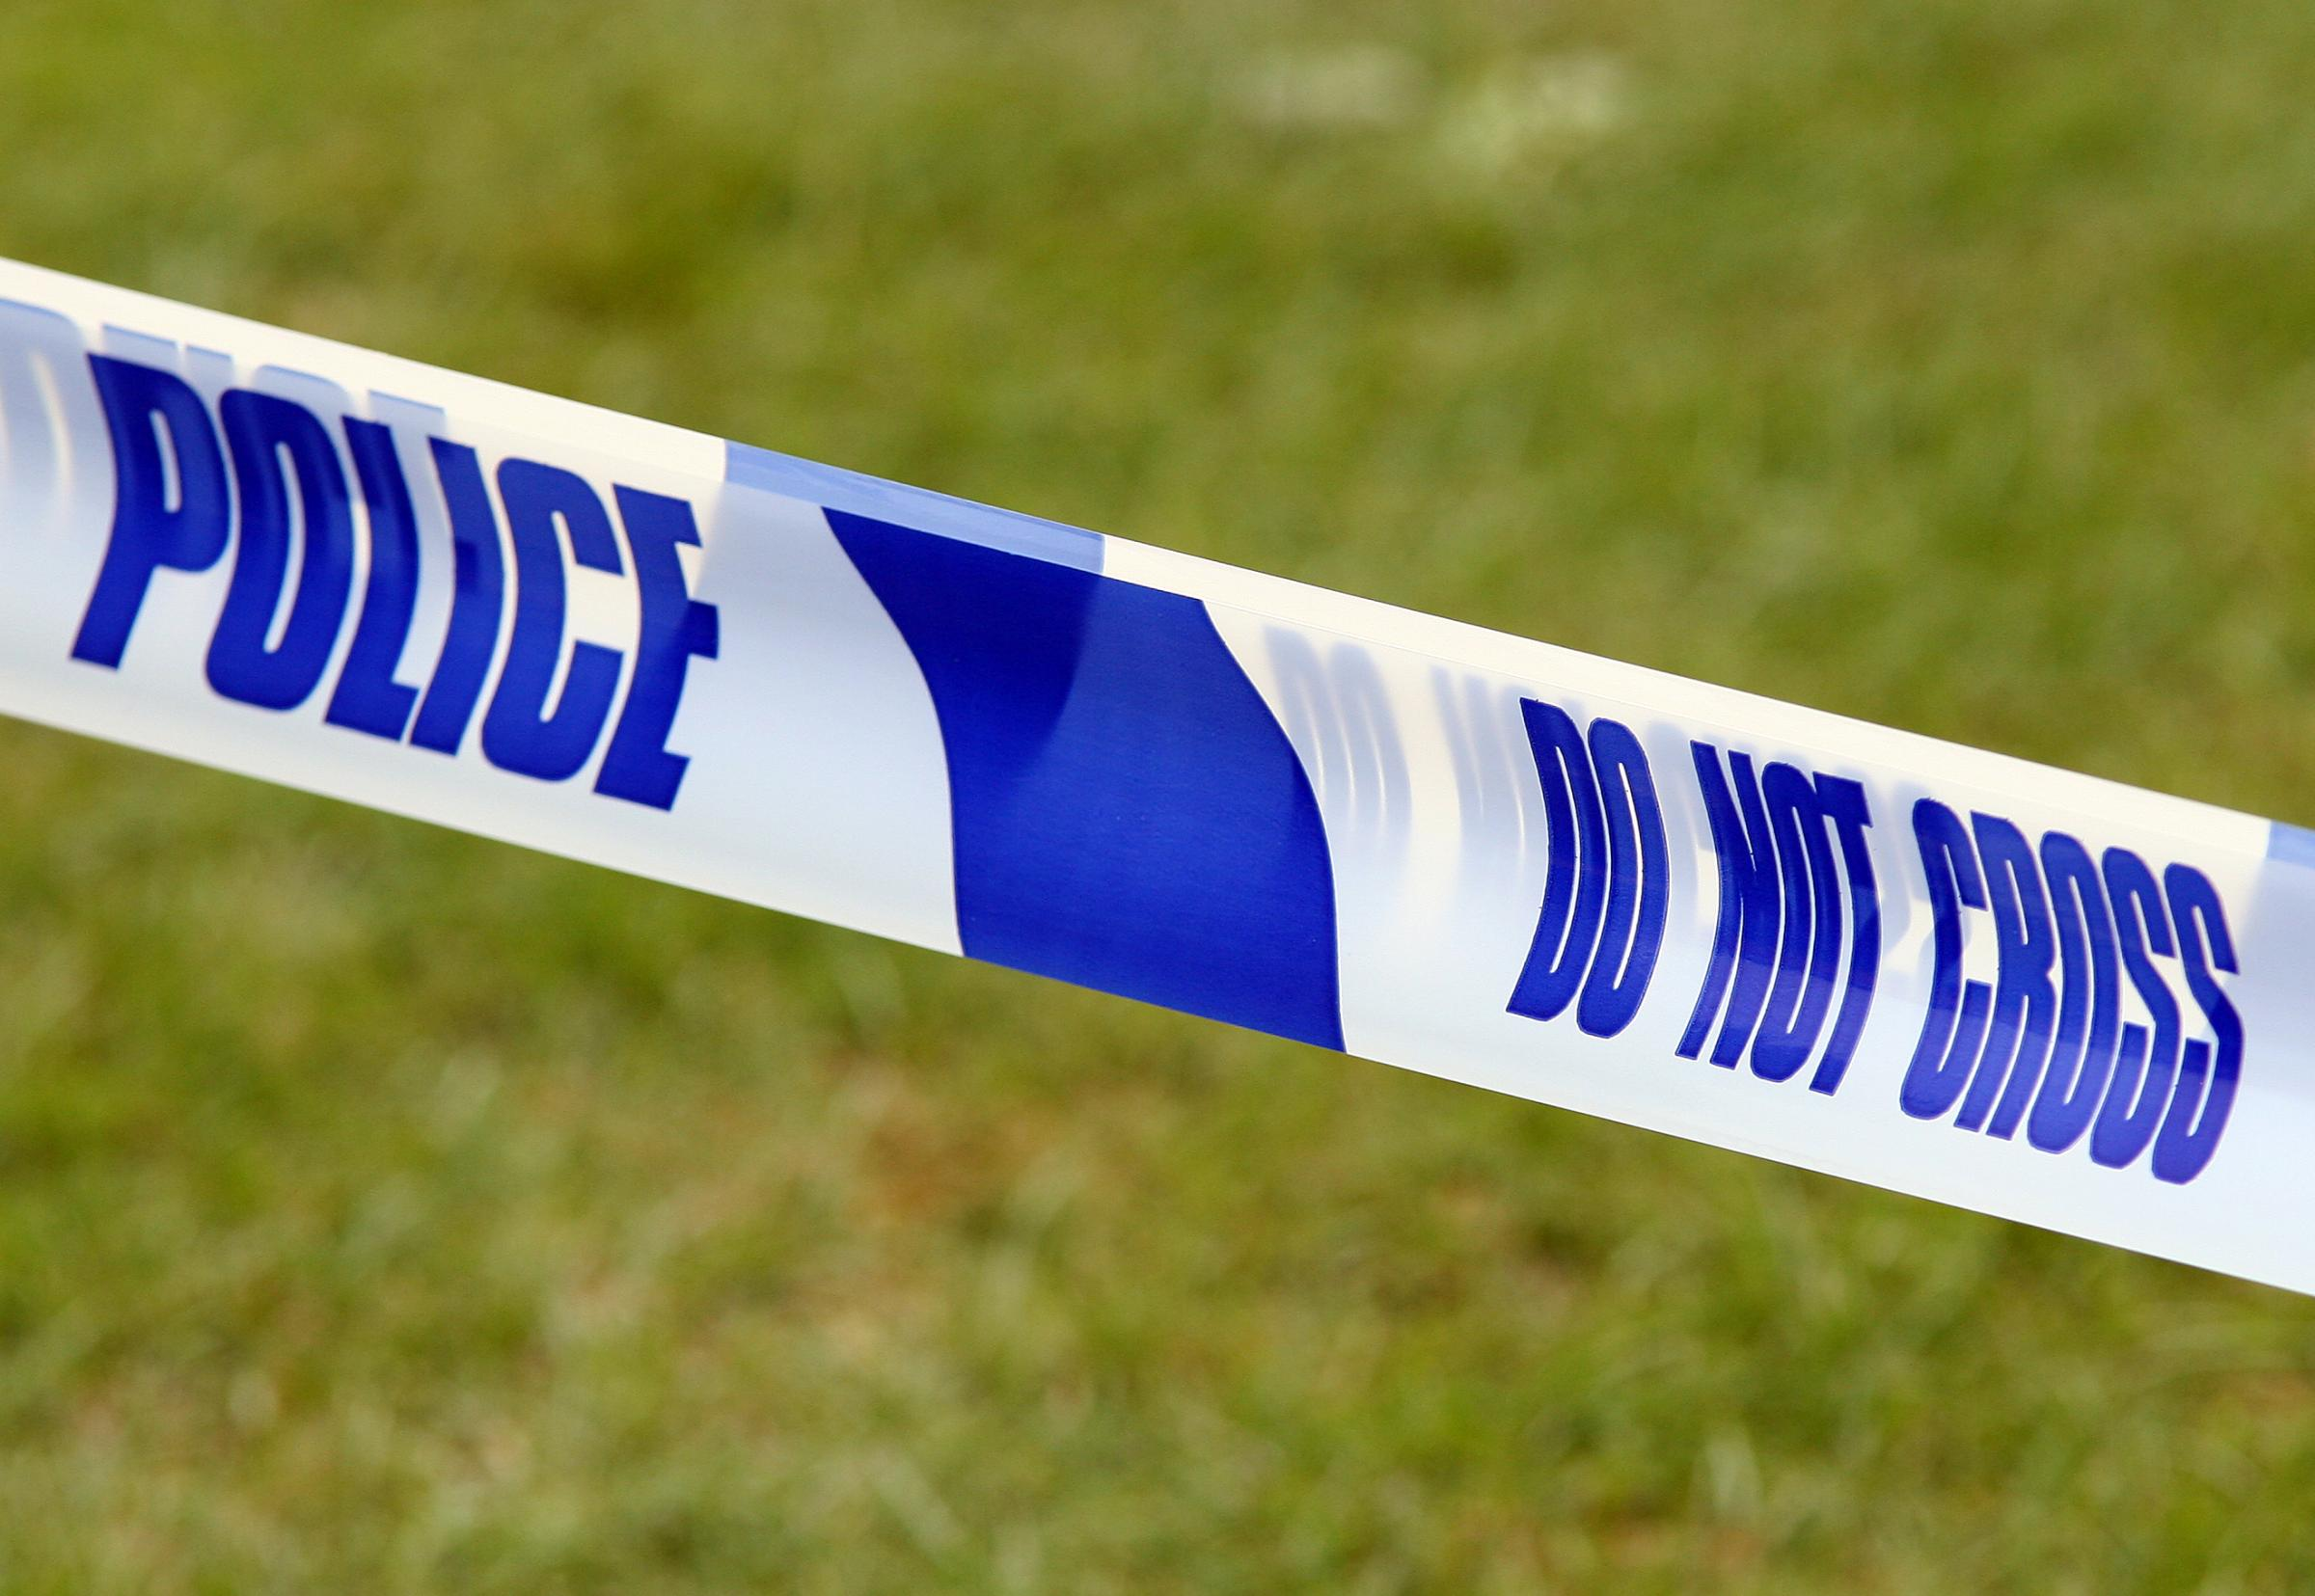 Elderly woman burgled in Pershore